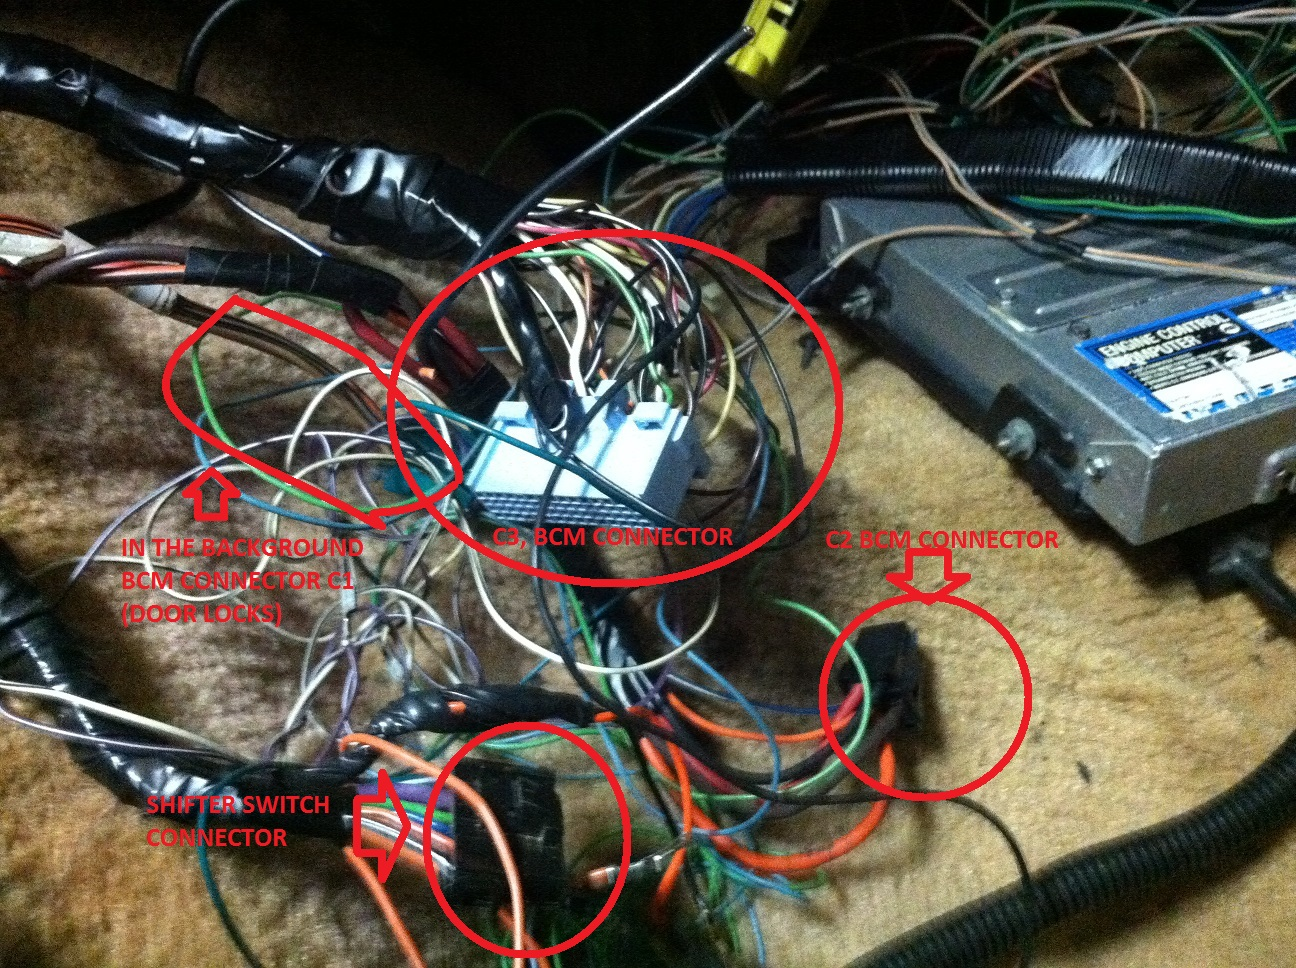 hight resolution of radio harness wiring mess third generation f body message boards radio harness wiring mess img 0852 jpg